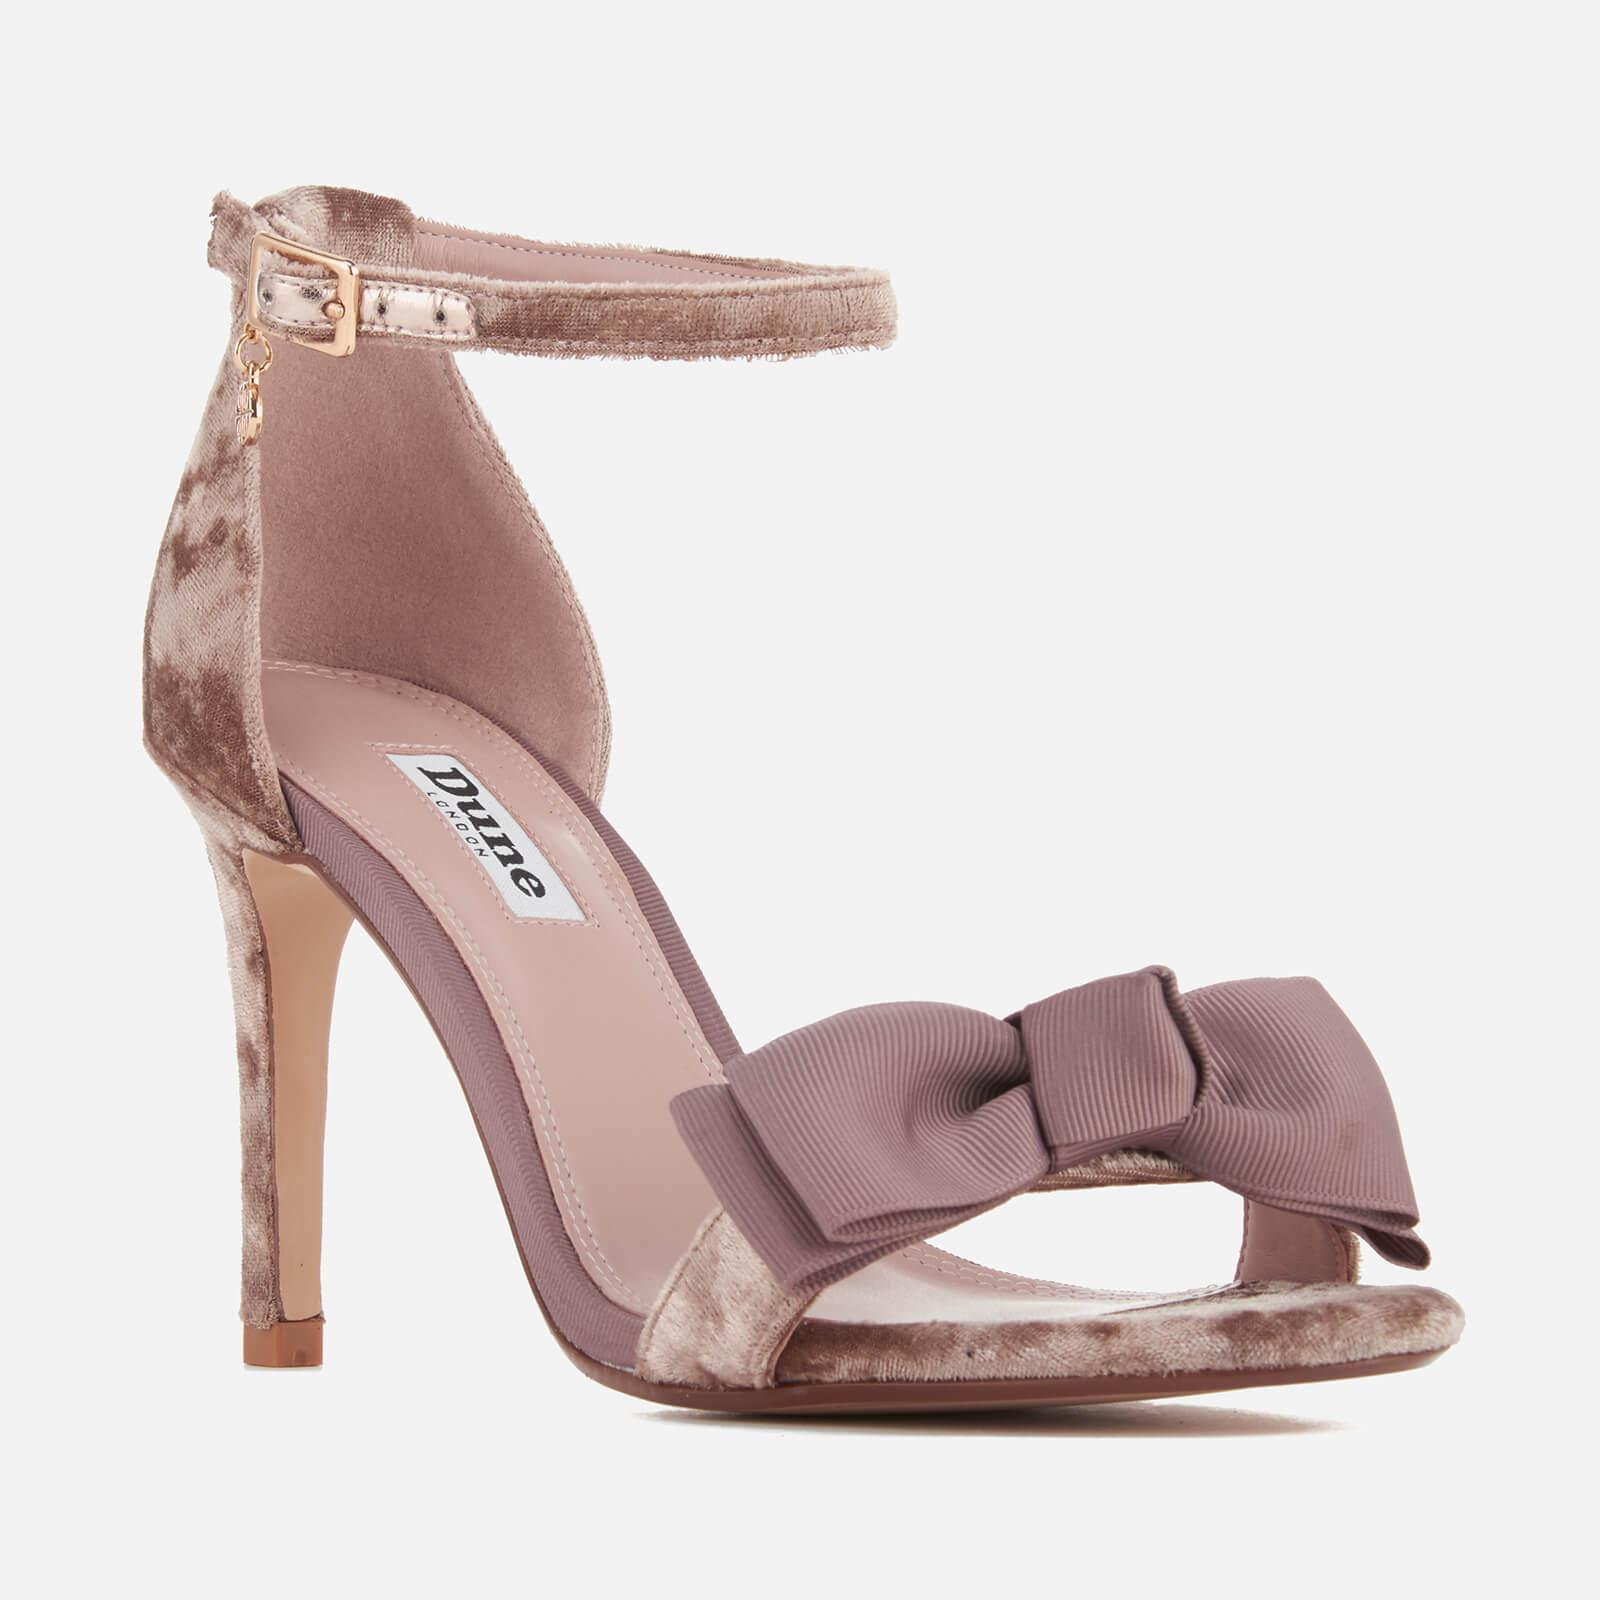 fc0c922321a Dune - Gray Women s Moella Velvet Bow Barely There Heeled Sandals - Lyst.  View fullscreen